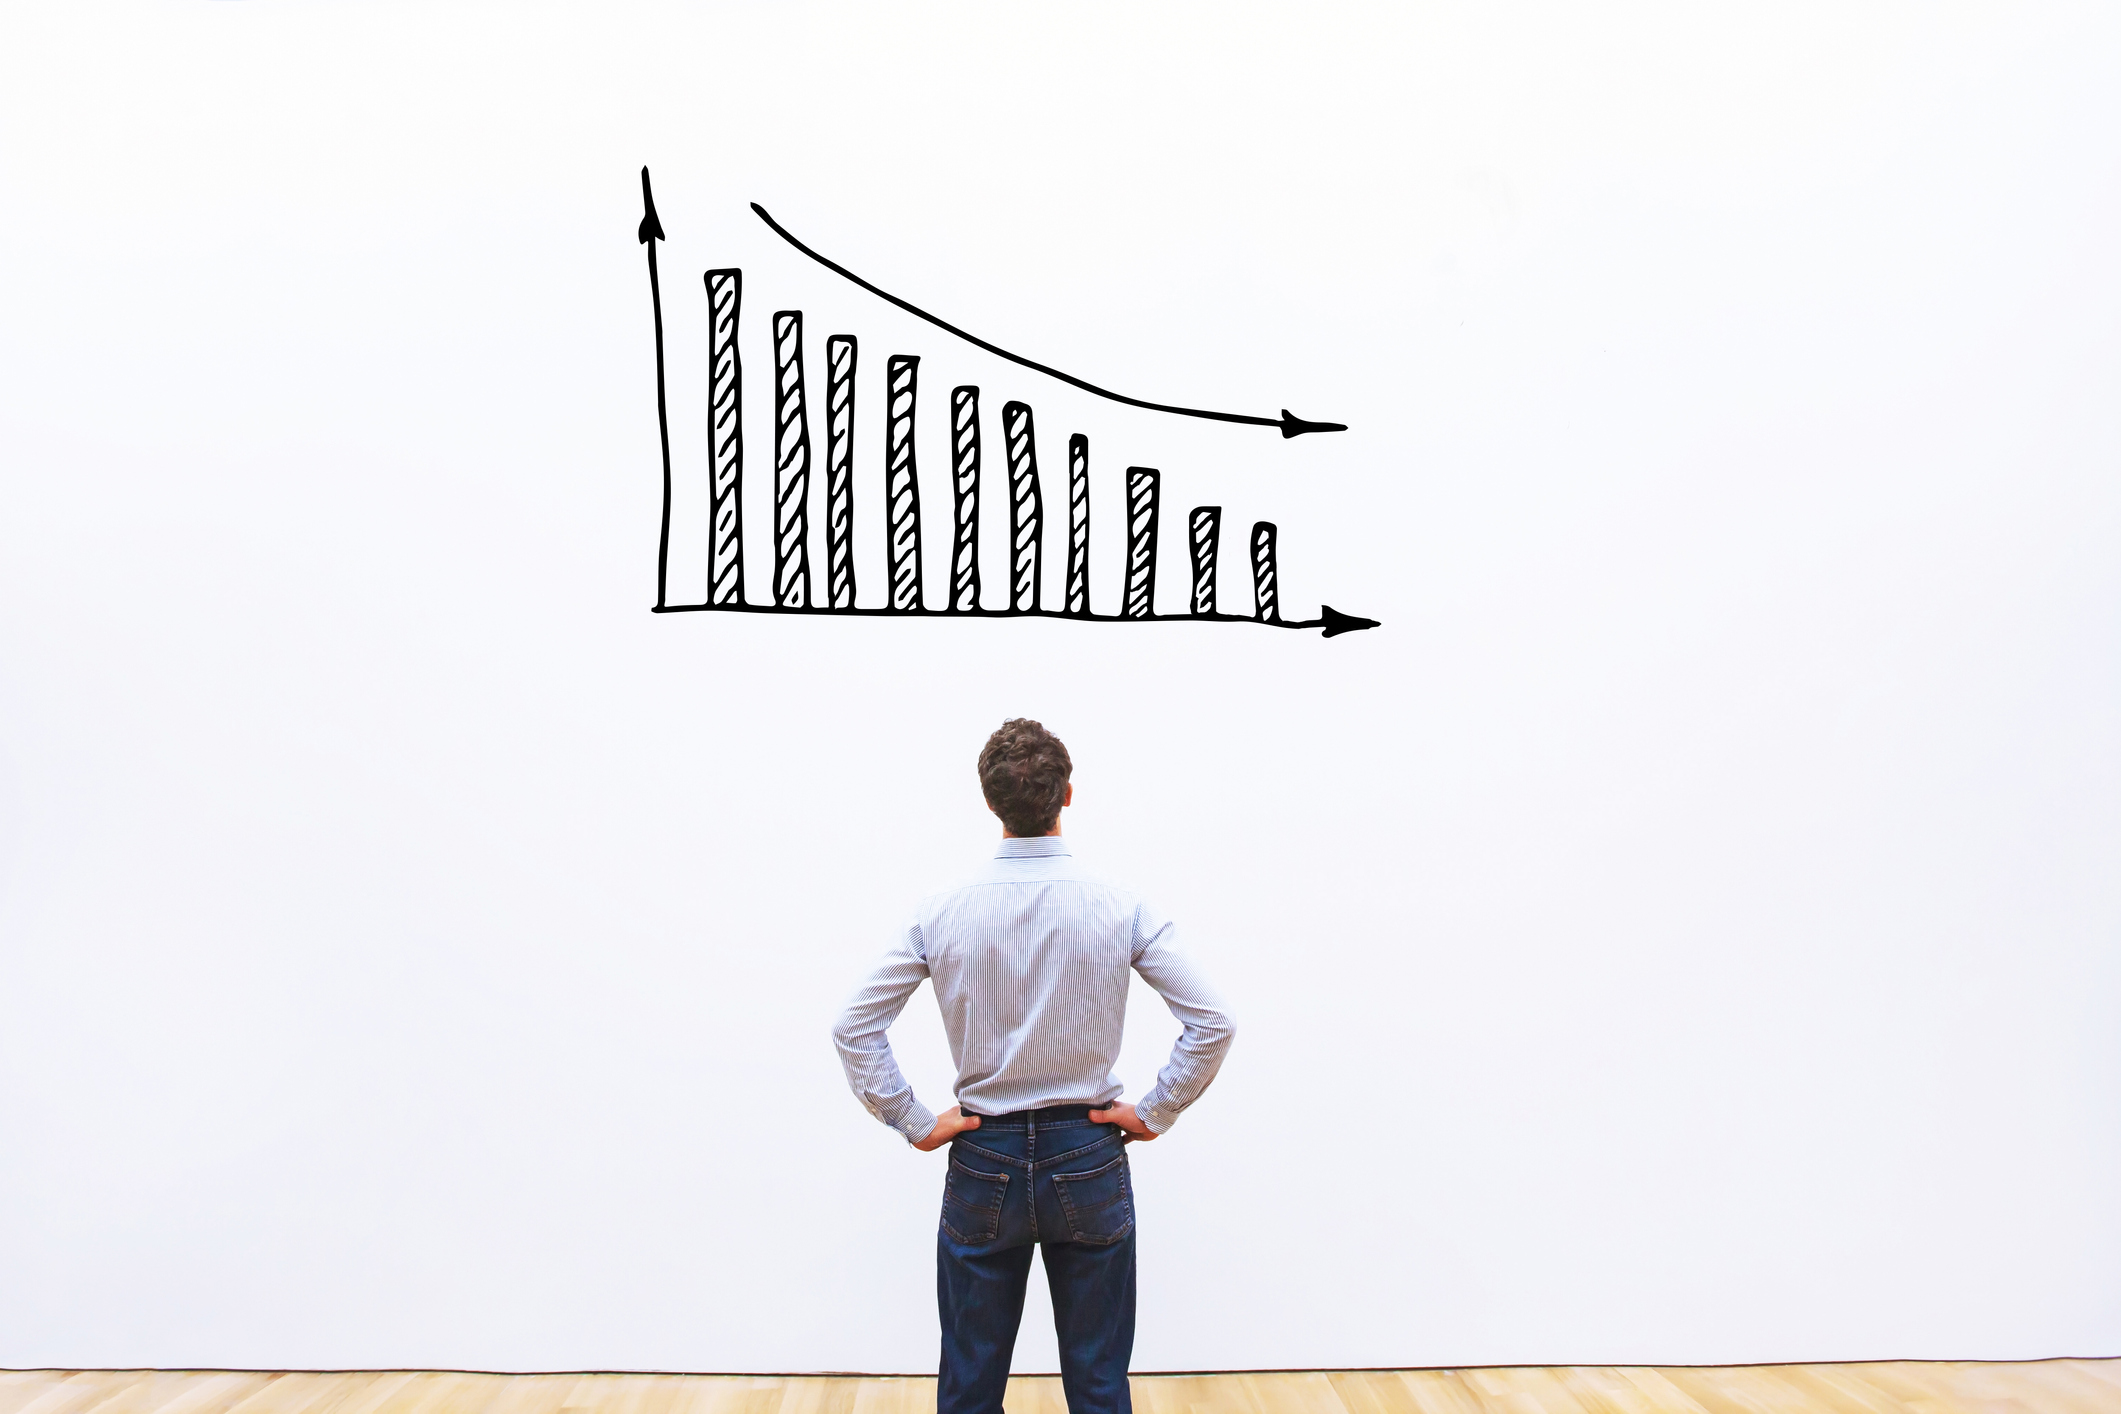 Man standing in front of a white board with a decreasing bar graph drawn on it